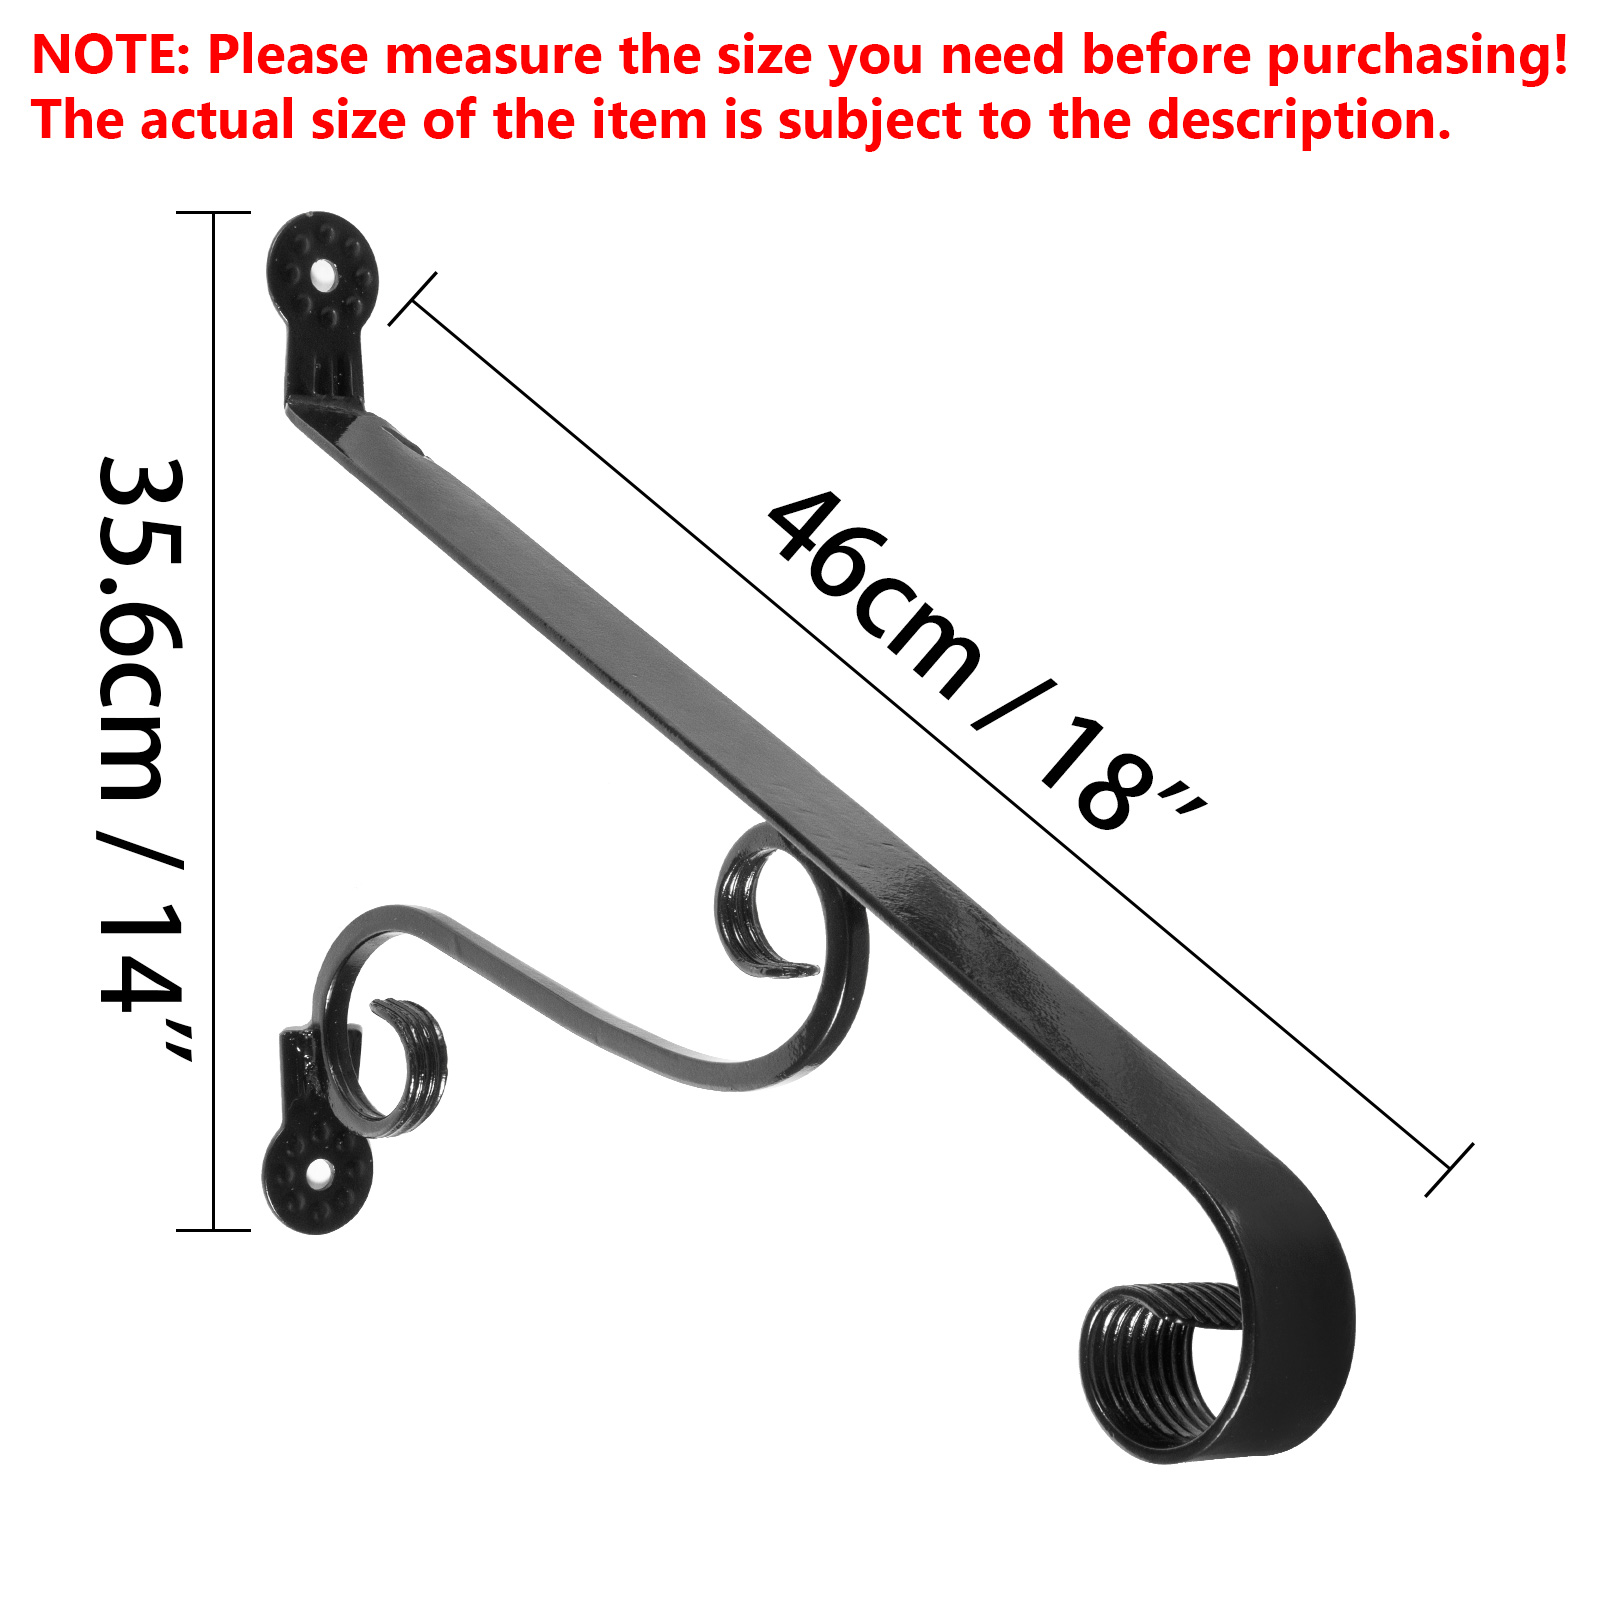 Handrails-for-Outdoor-Step-Wrought-Iron-Handrail-20-034-Length-Porch-Deck-Railing thumbnail 140